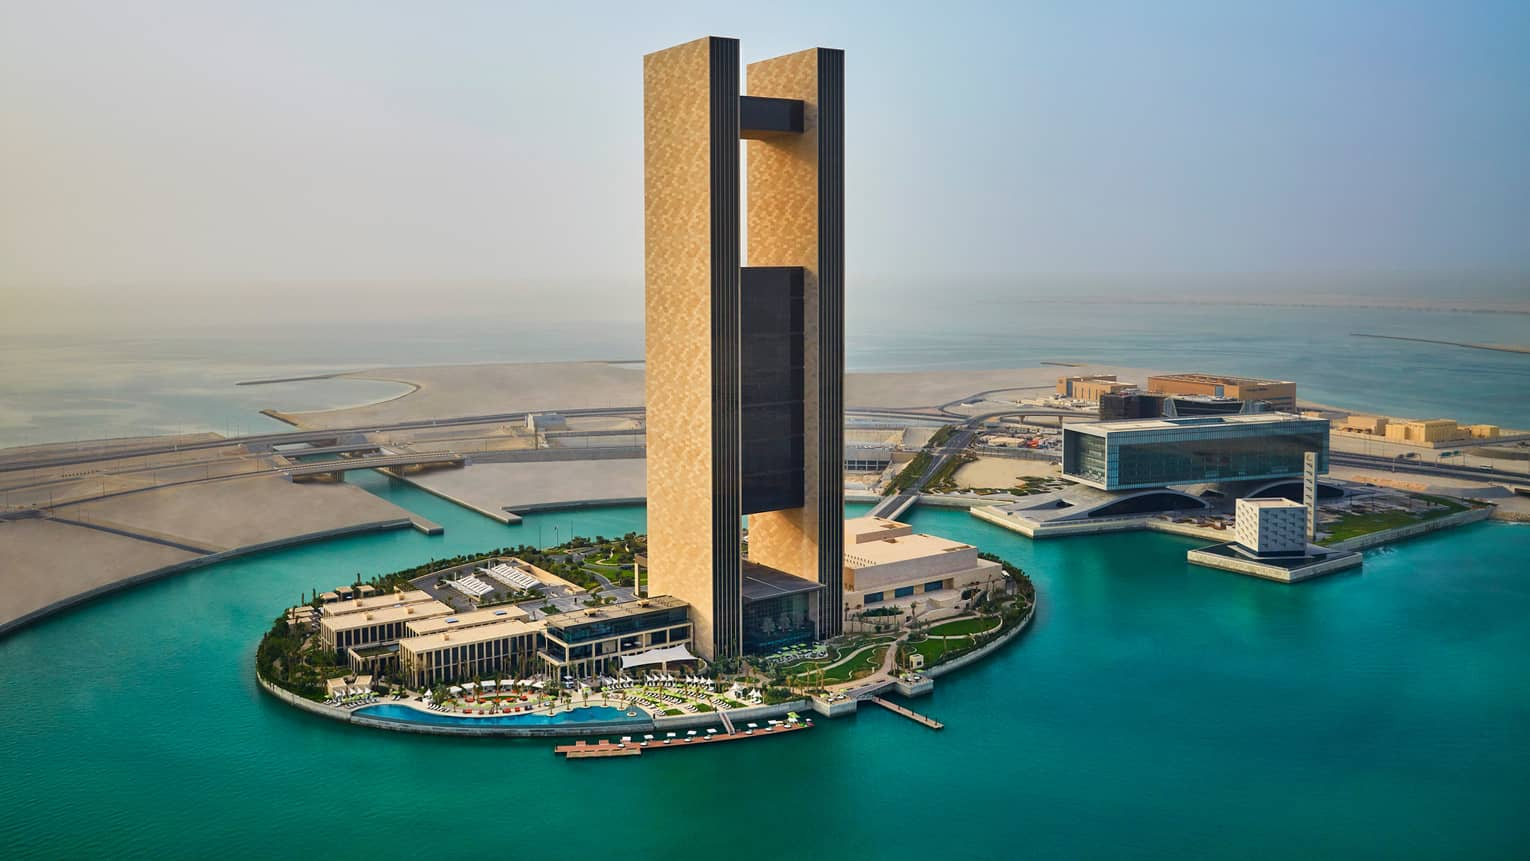 Four Seasons Hotel Bahrain Bay iconic tower on small oval-shaped reclaimed island, water surrounding